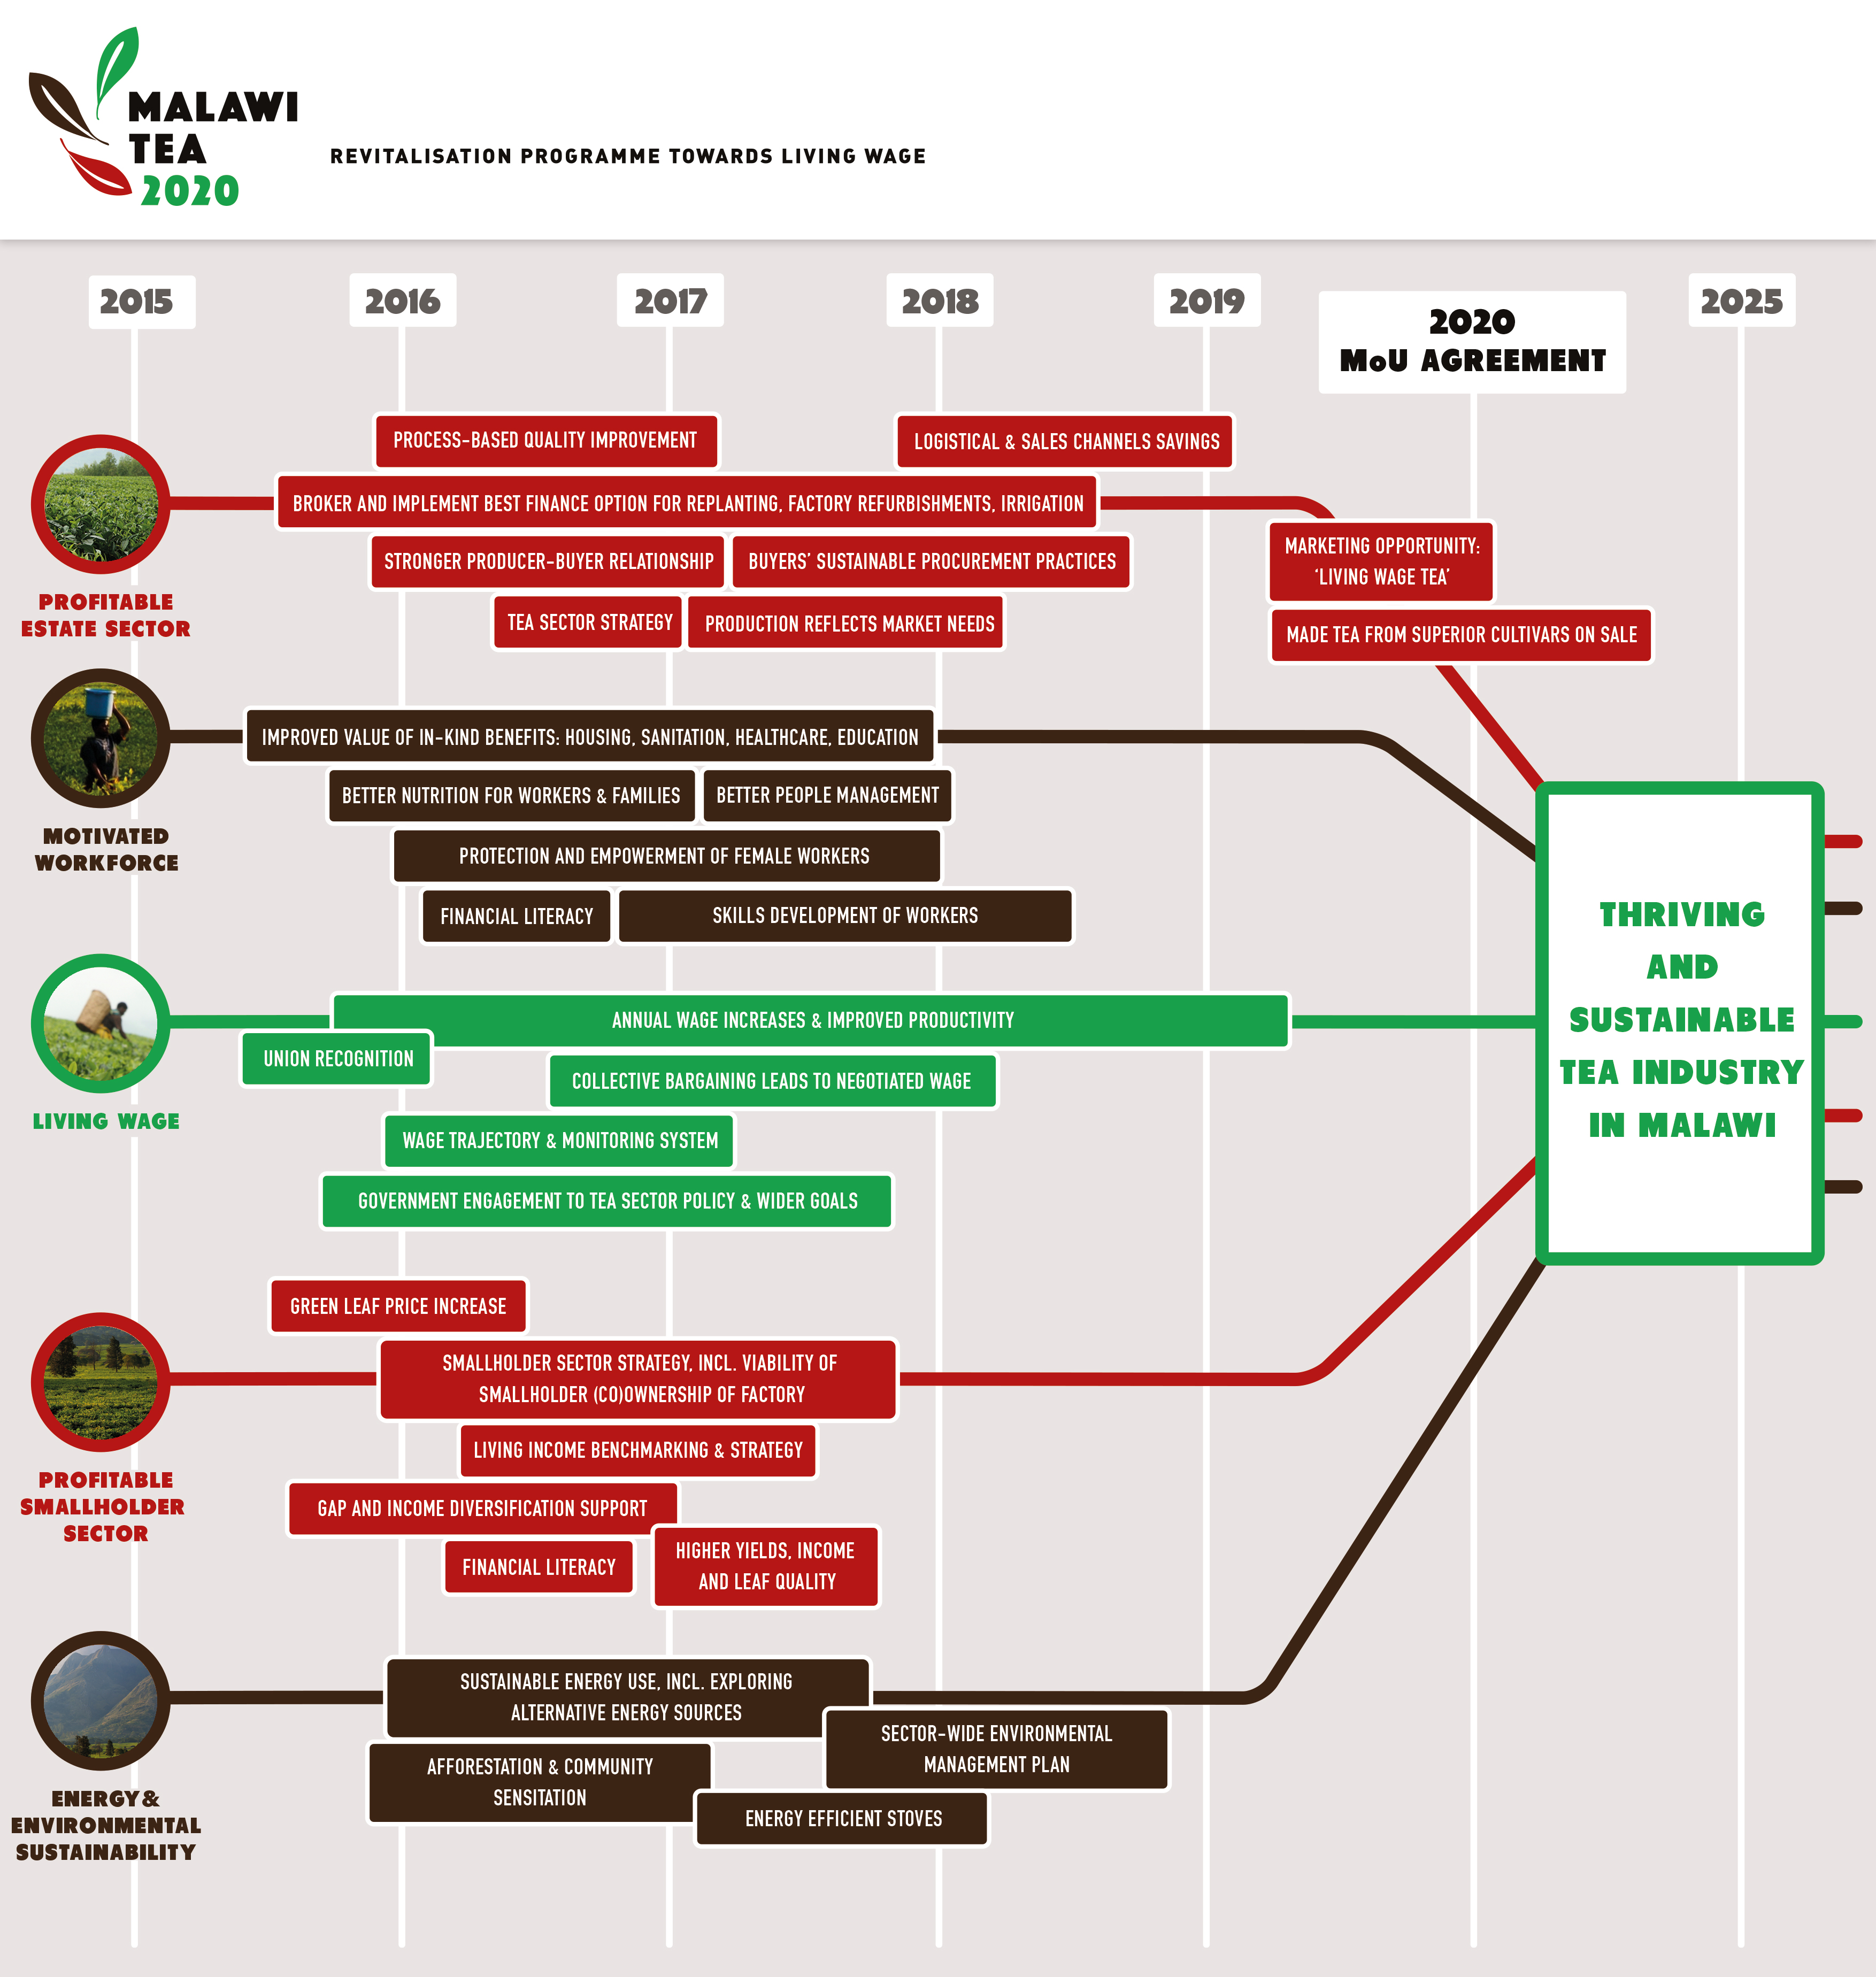 malawi-tea-2020-roadmap